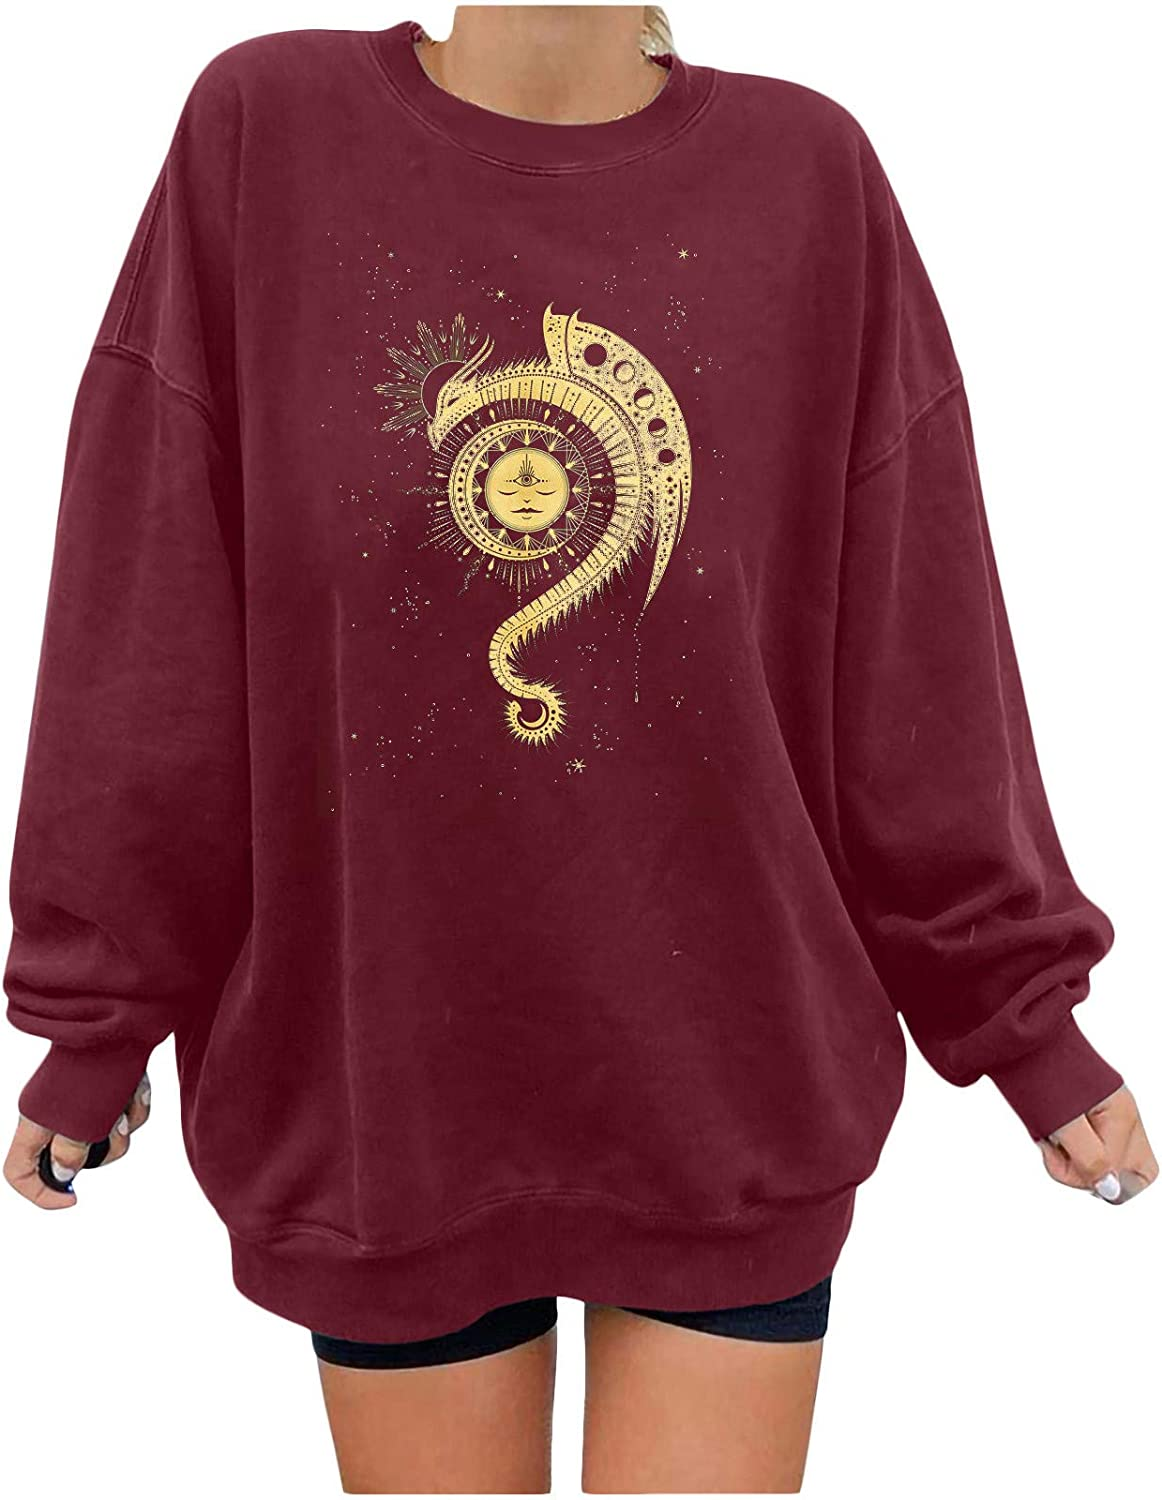 Tenworld B Christian Shirts for Women All items in Max 55% OFF the store Graph Long Moon Sun Sleeve